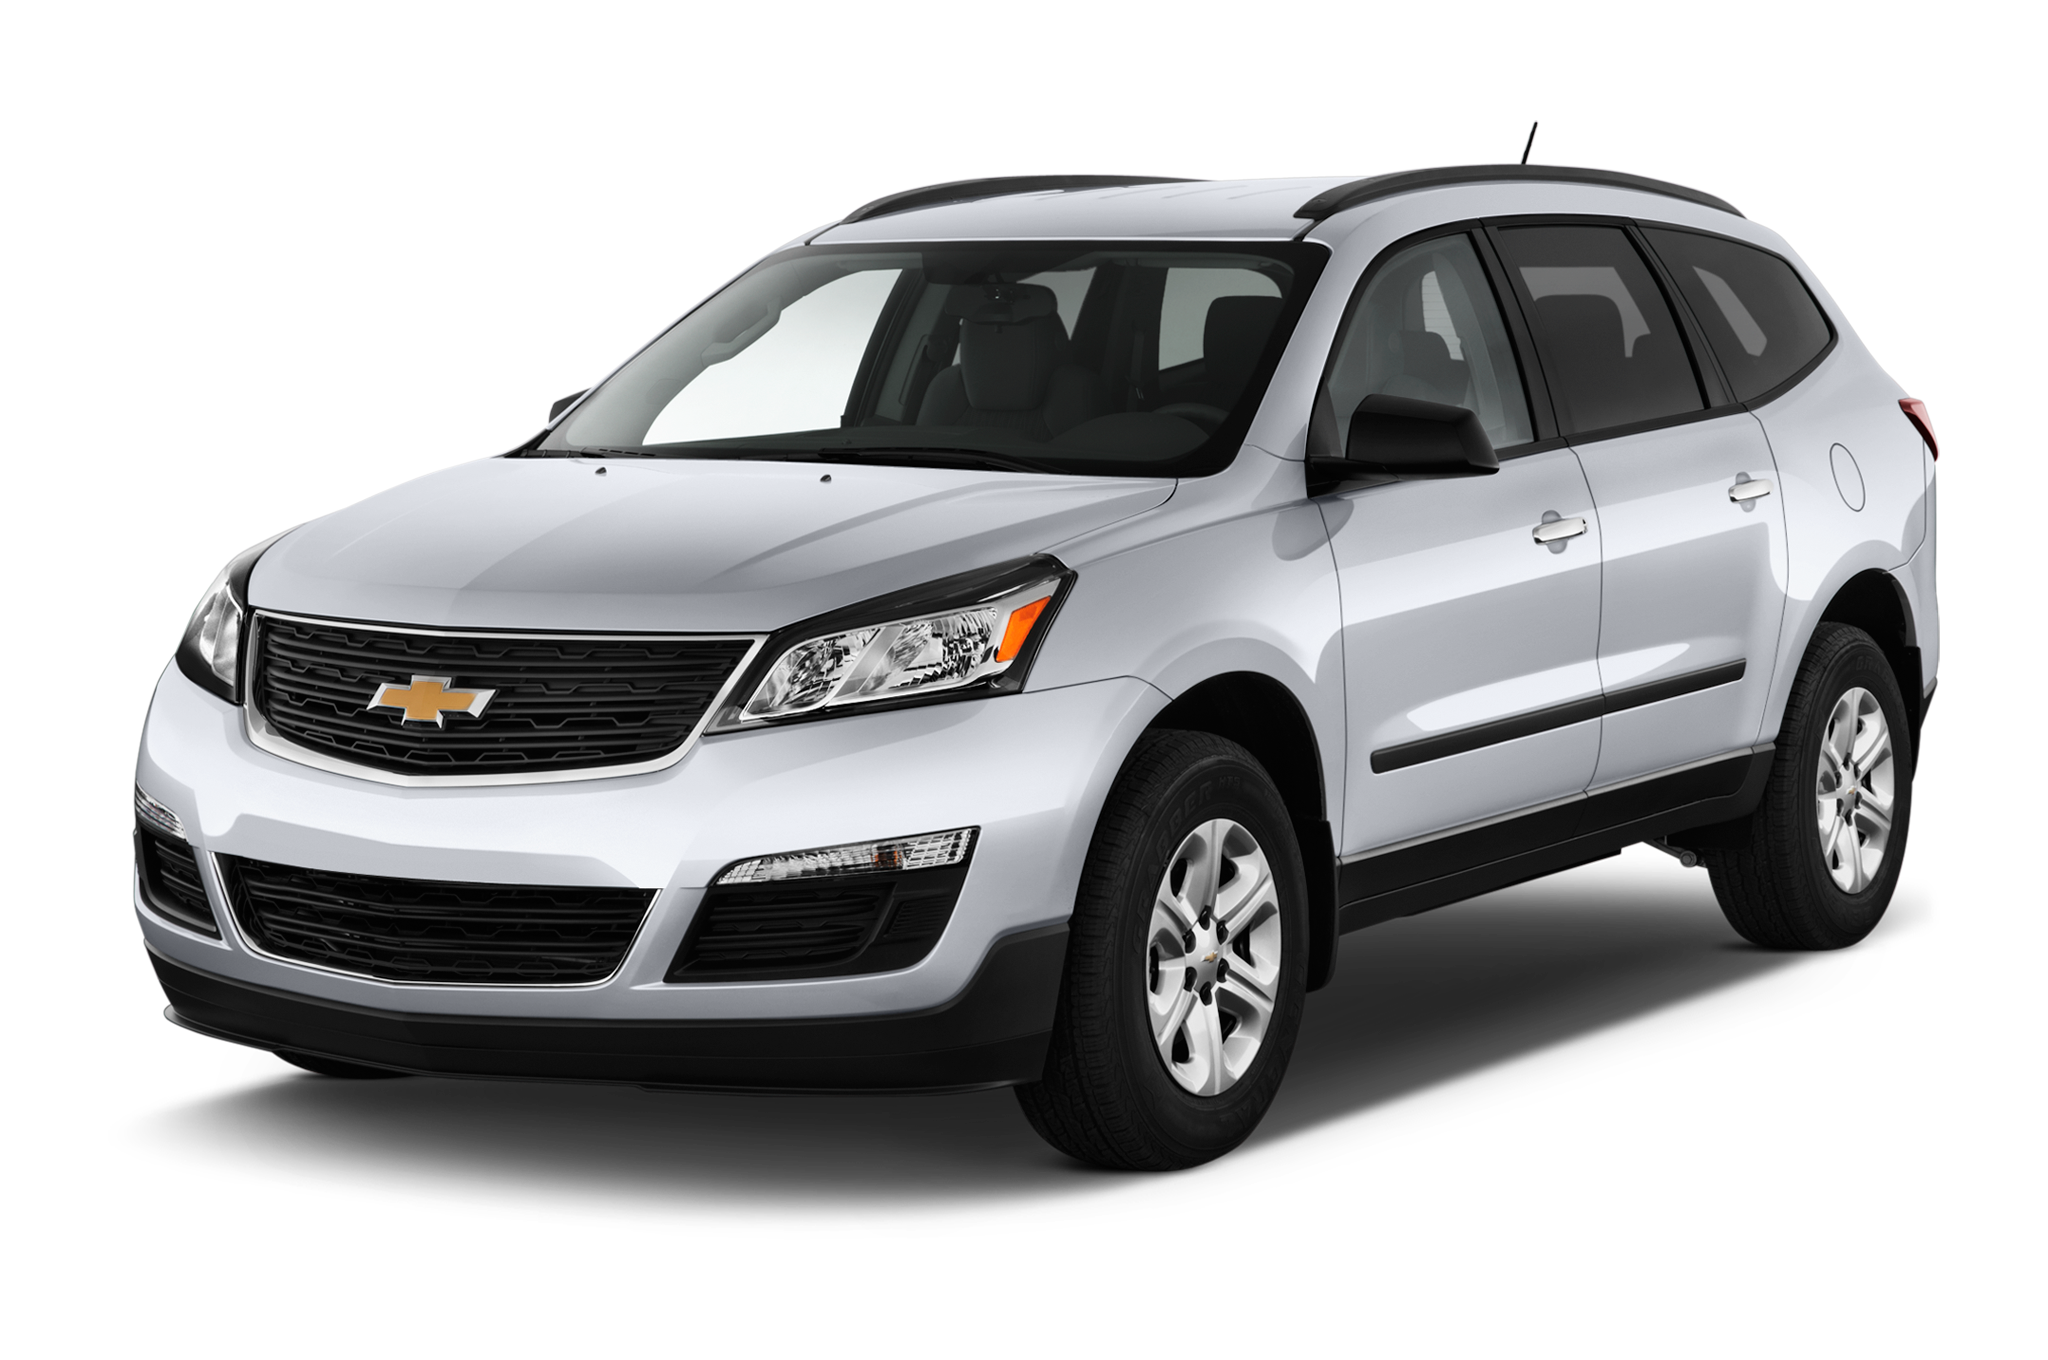 Chevrolet  Traverse PNG Image